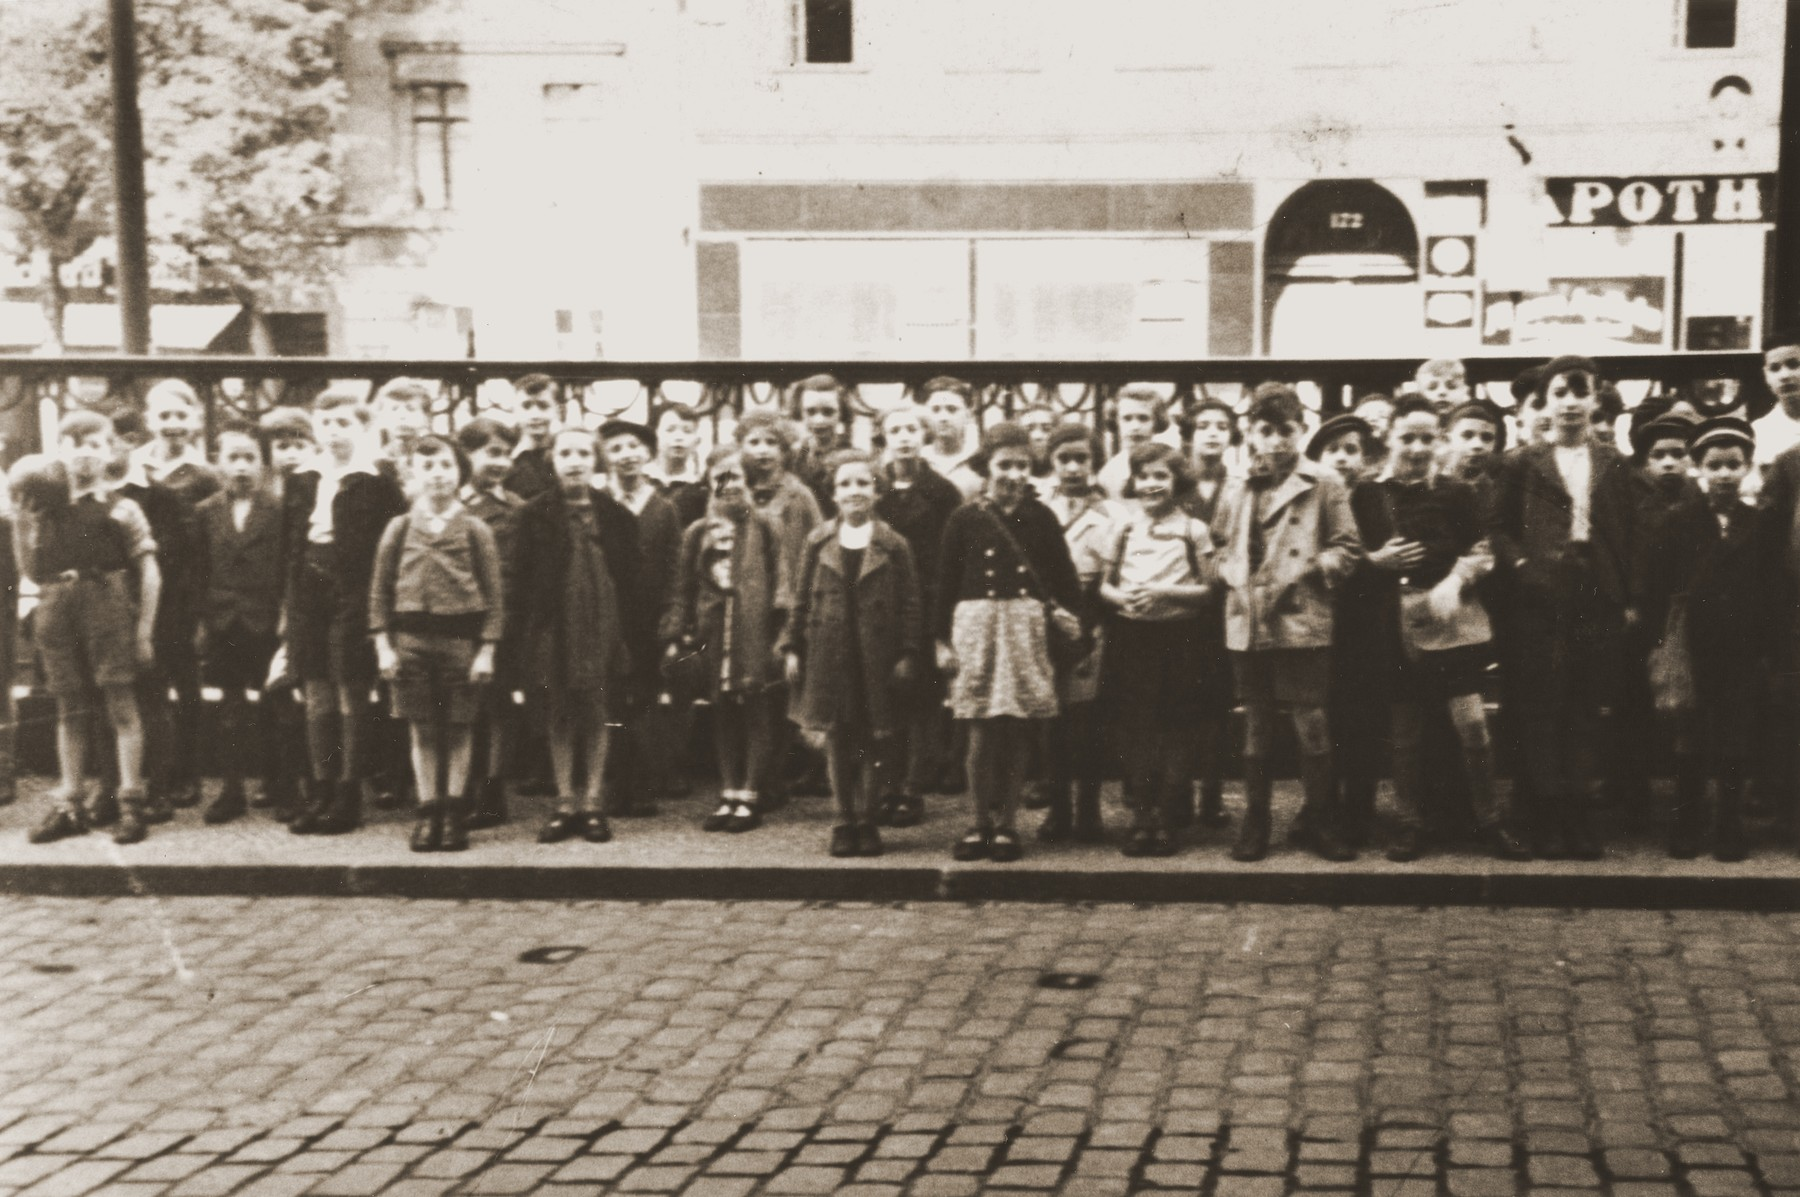 Pupils from the Rykestrasse Jewish school pose on a street in Berlin.